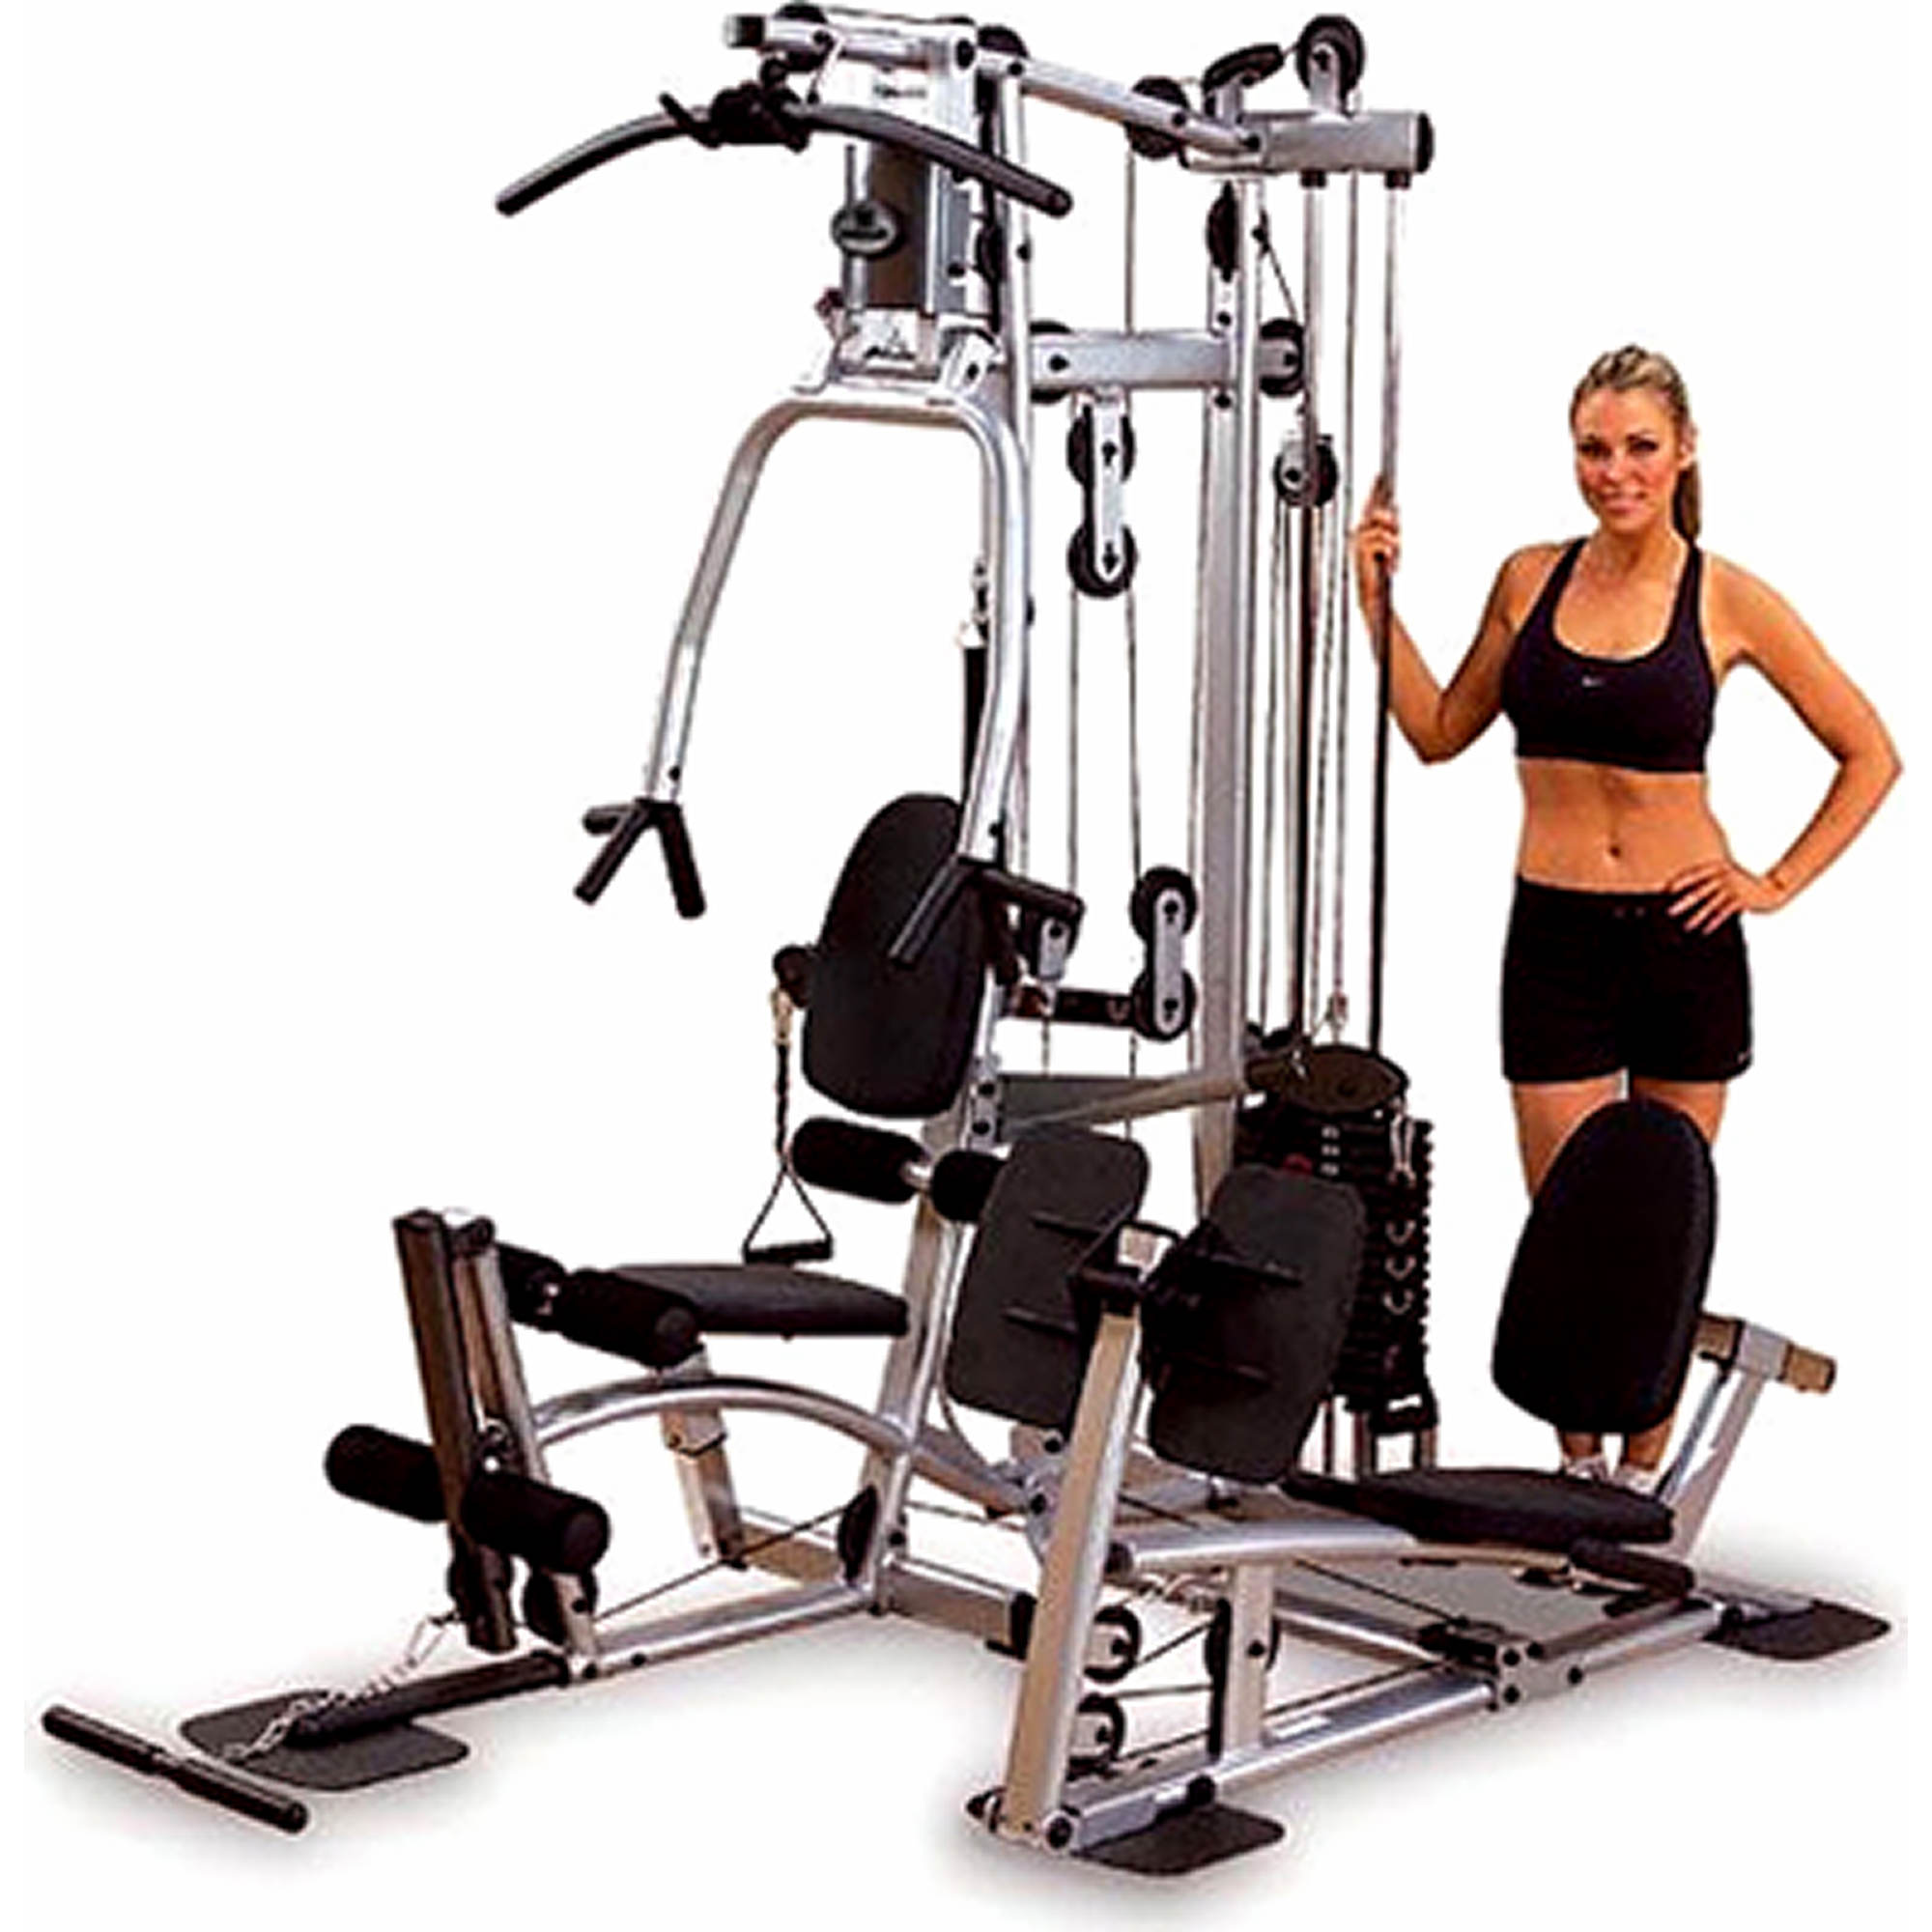 Home Gym Leg Workout: Powerline Home Gym With Functional Training Arms And Leg